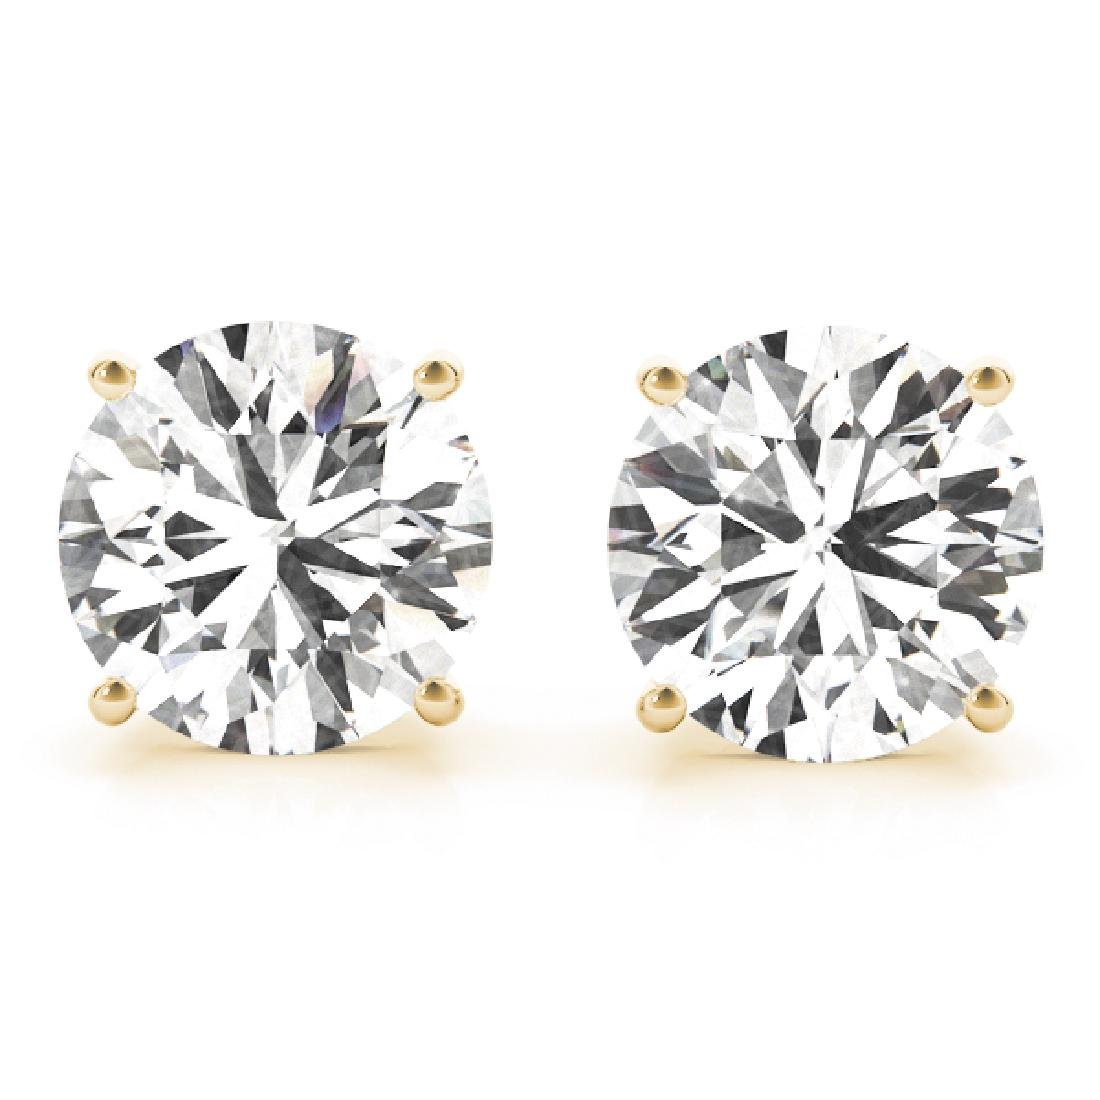 CERTIFIED 0.7 CTW ROUND H/I1 DIAMOND SOLITAIRE EARRINGS